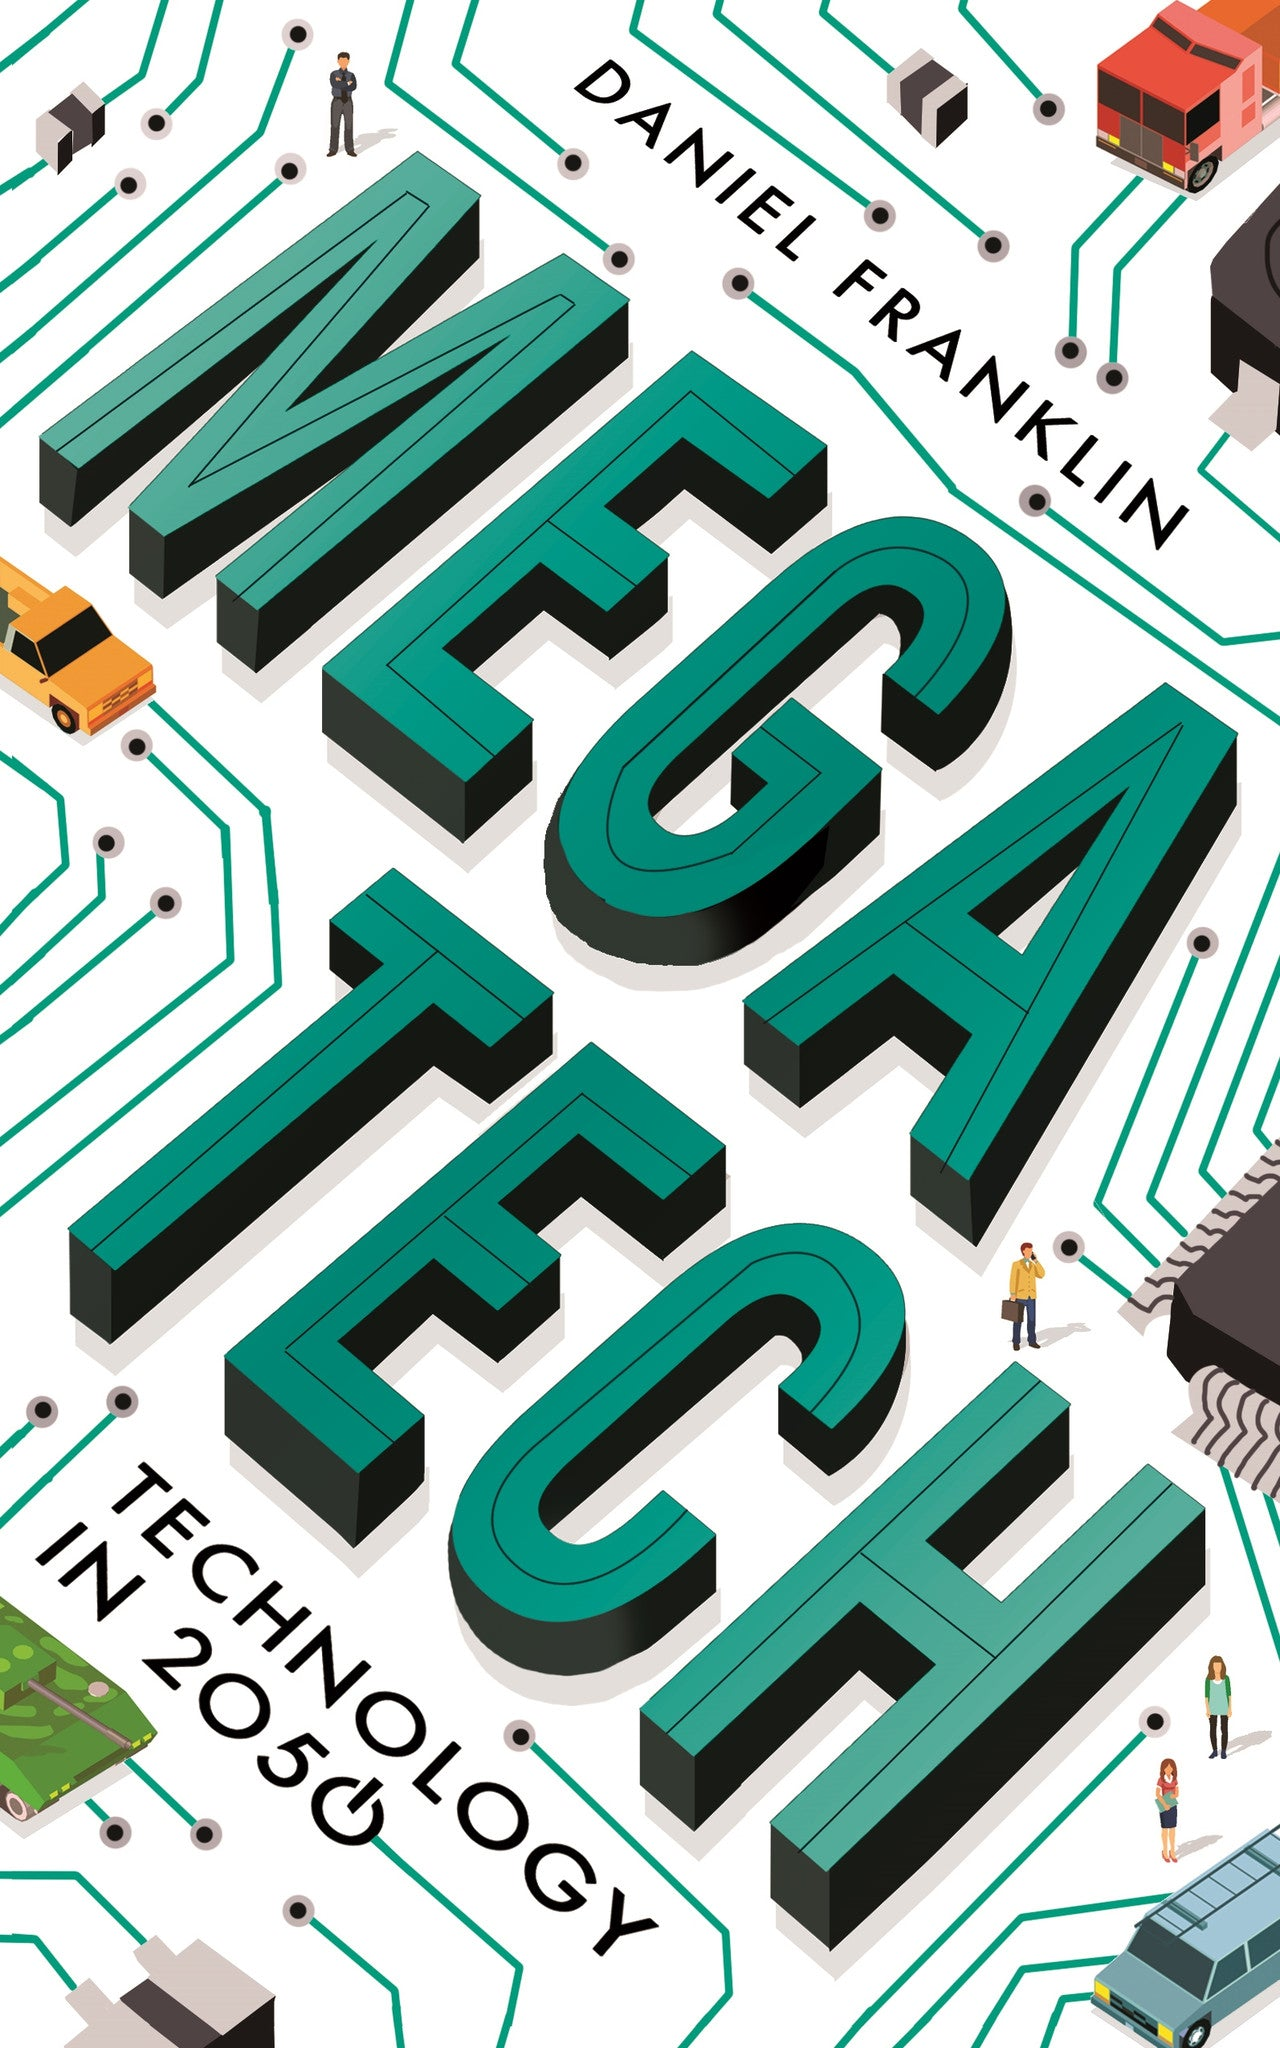 Megatech: Technology in 2050 new edition